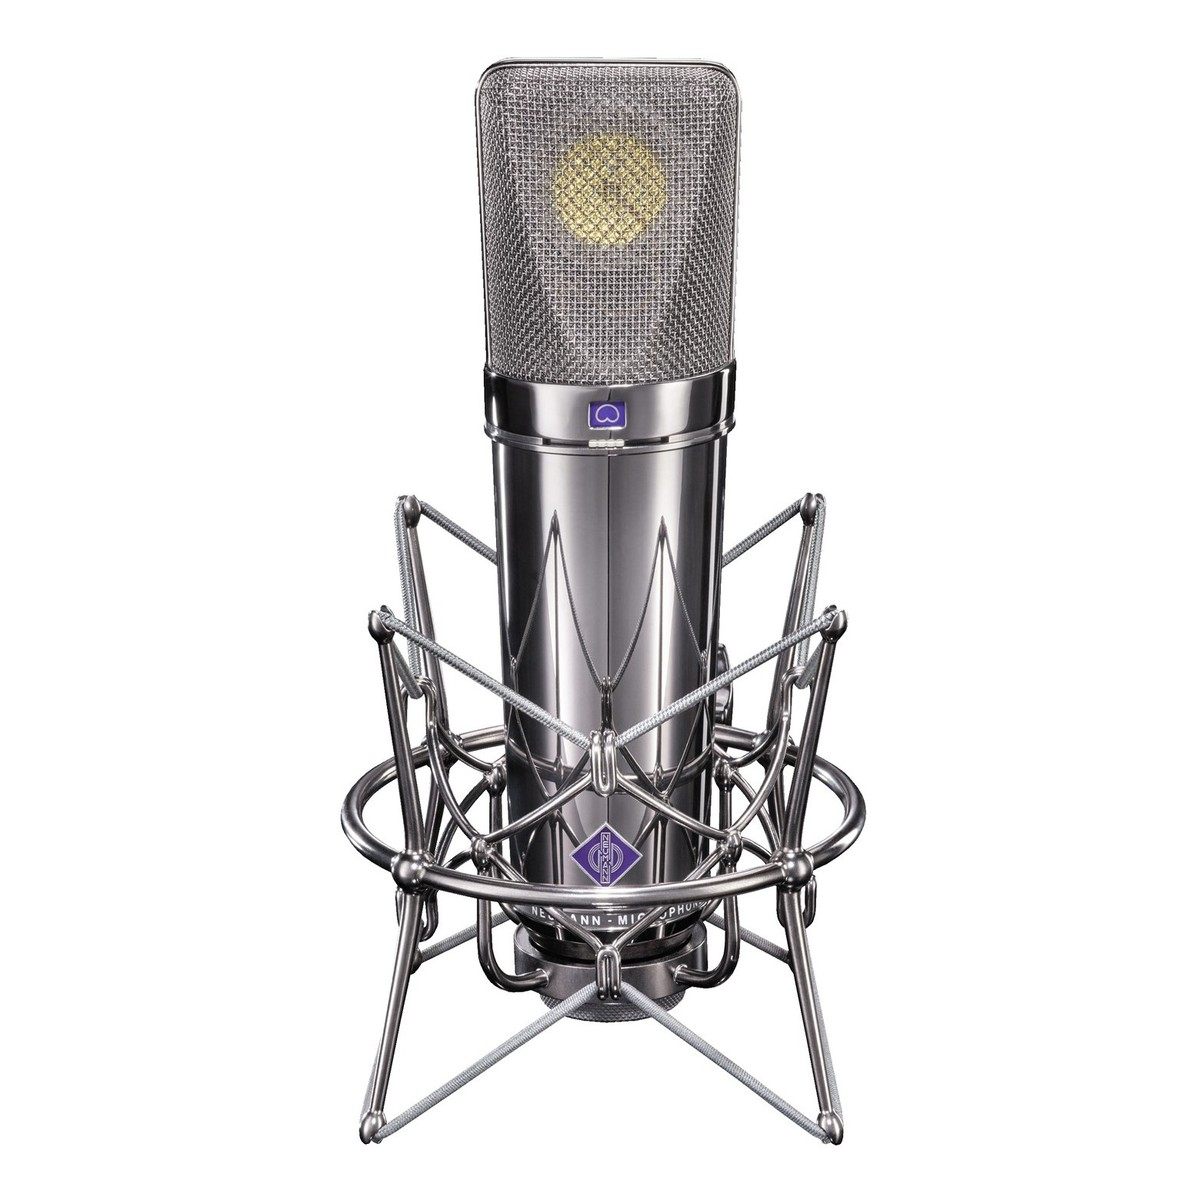 Neumann U 87 Rhodium Edition Studio Microphone At Gear4music Details About New U87 Type Circuit Condenser Case Shock Limited Loading Zoom